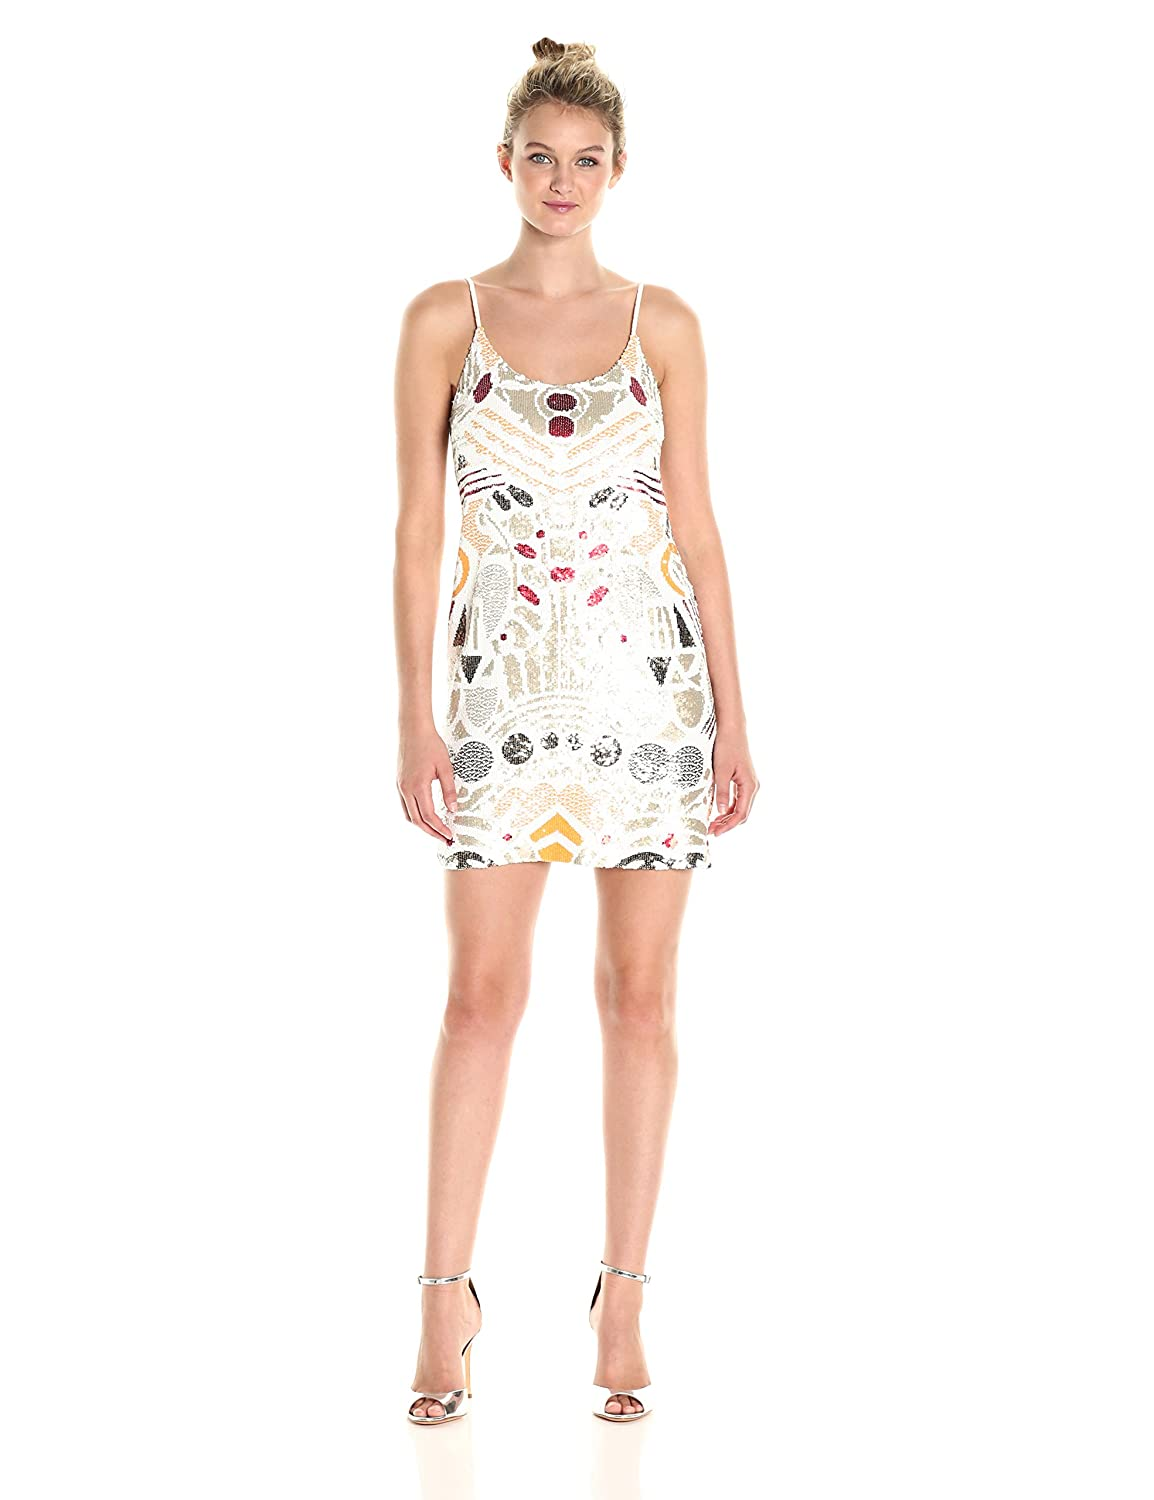 Camber Sand Multi French Connection Womens Adanya Shine Dress Dress